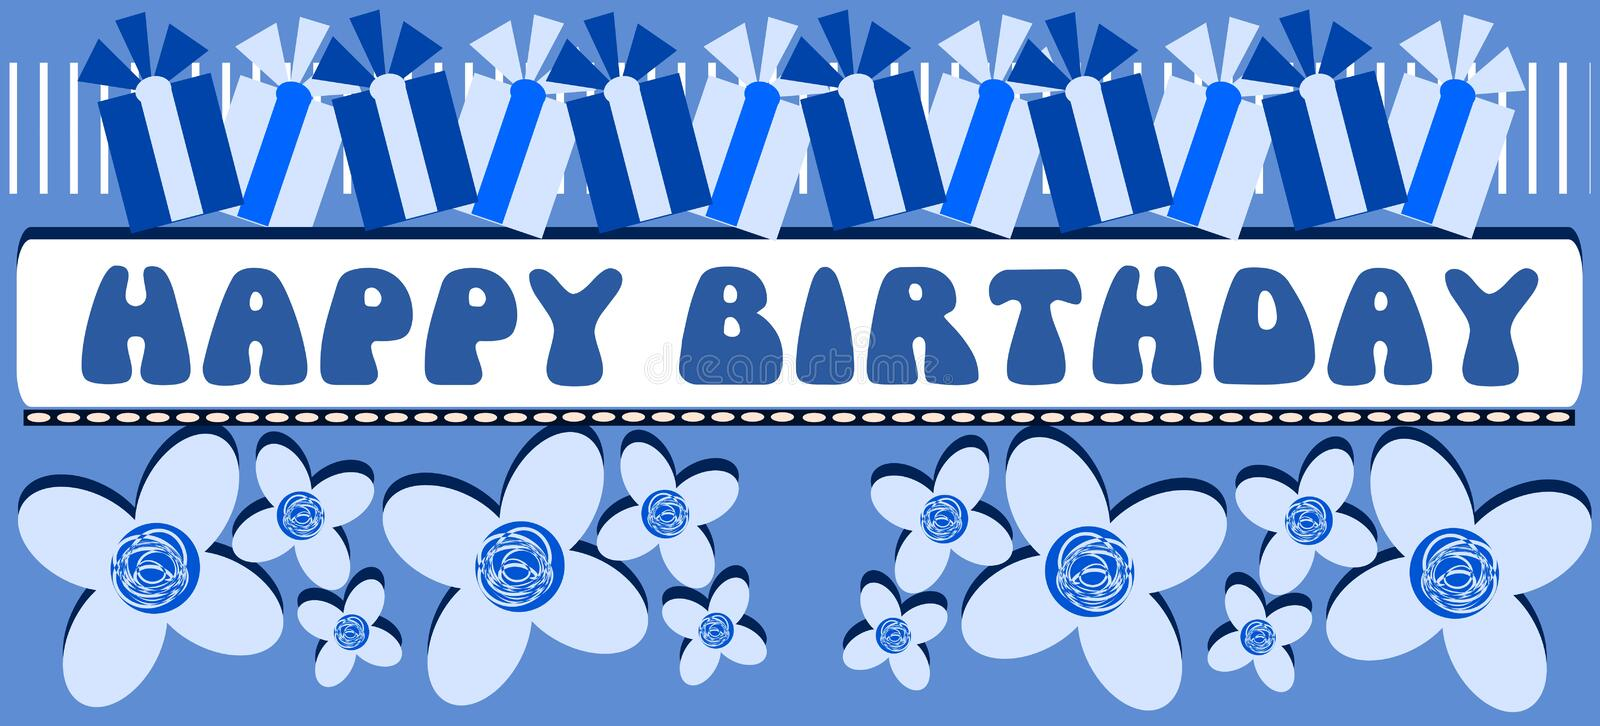 Happy Birthday Greeting Card In Blue Tones Stock